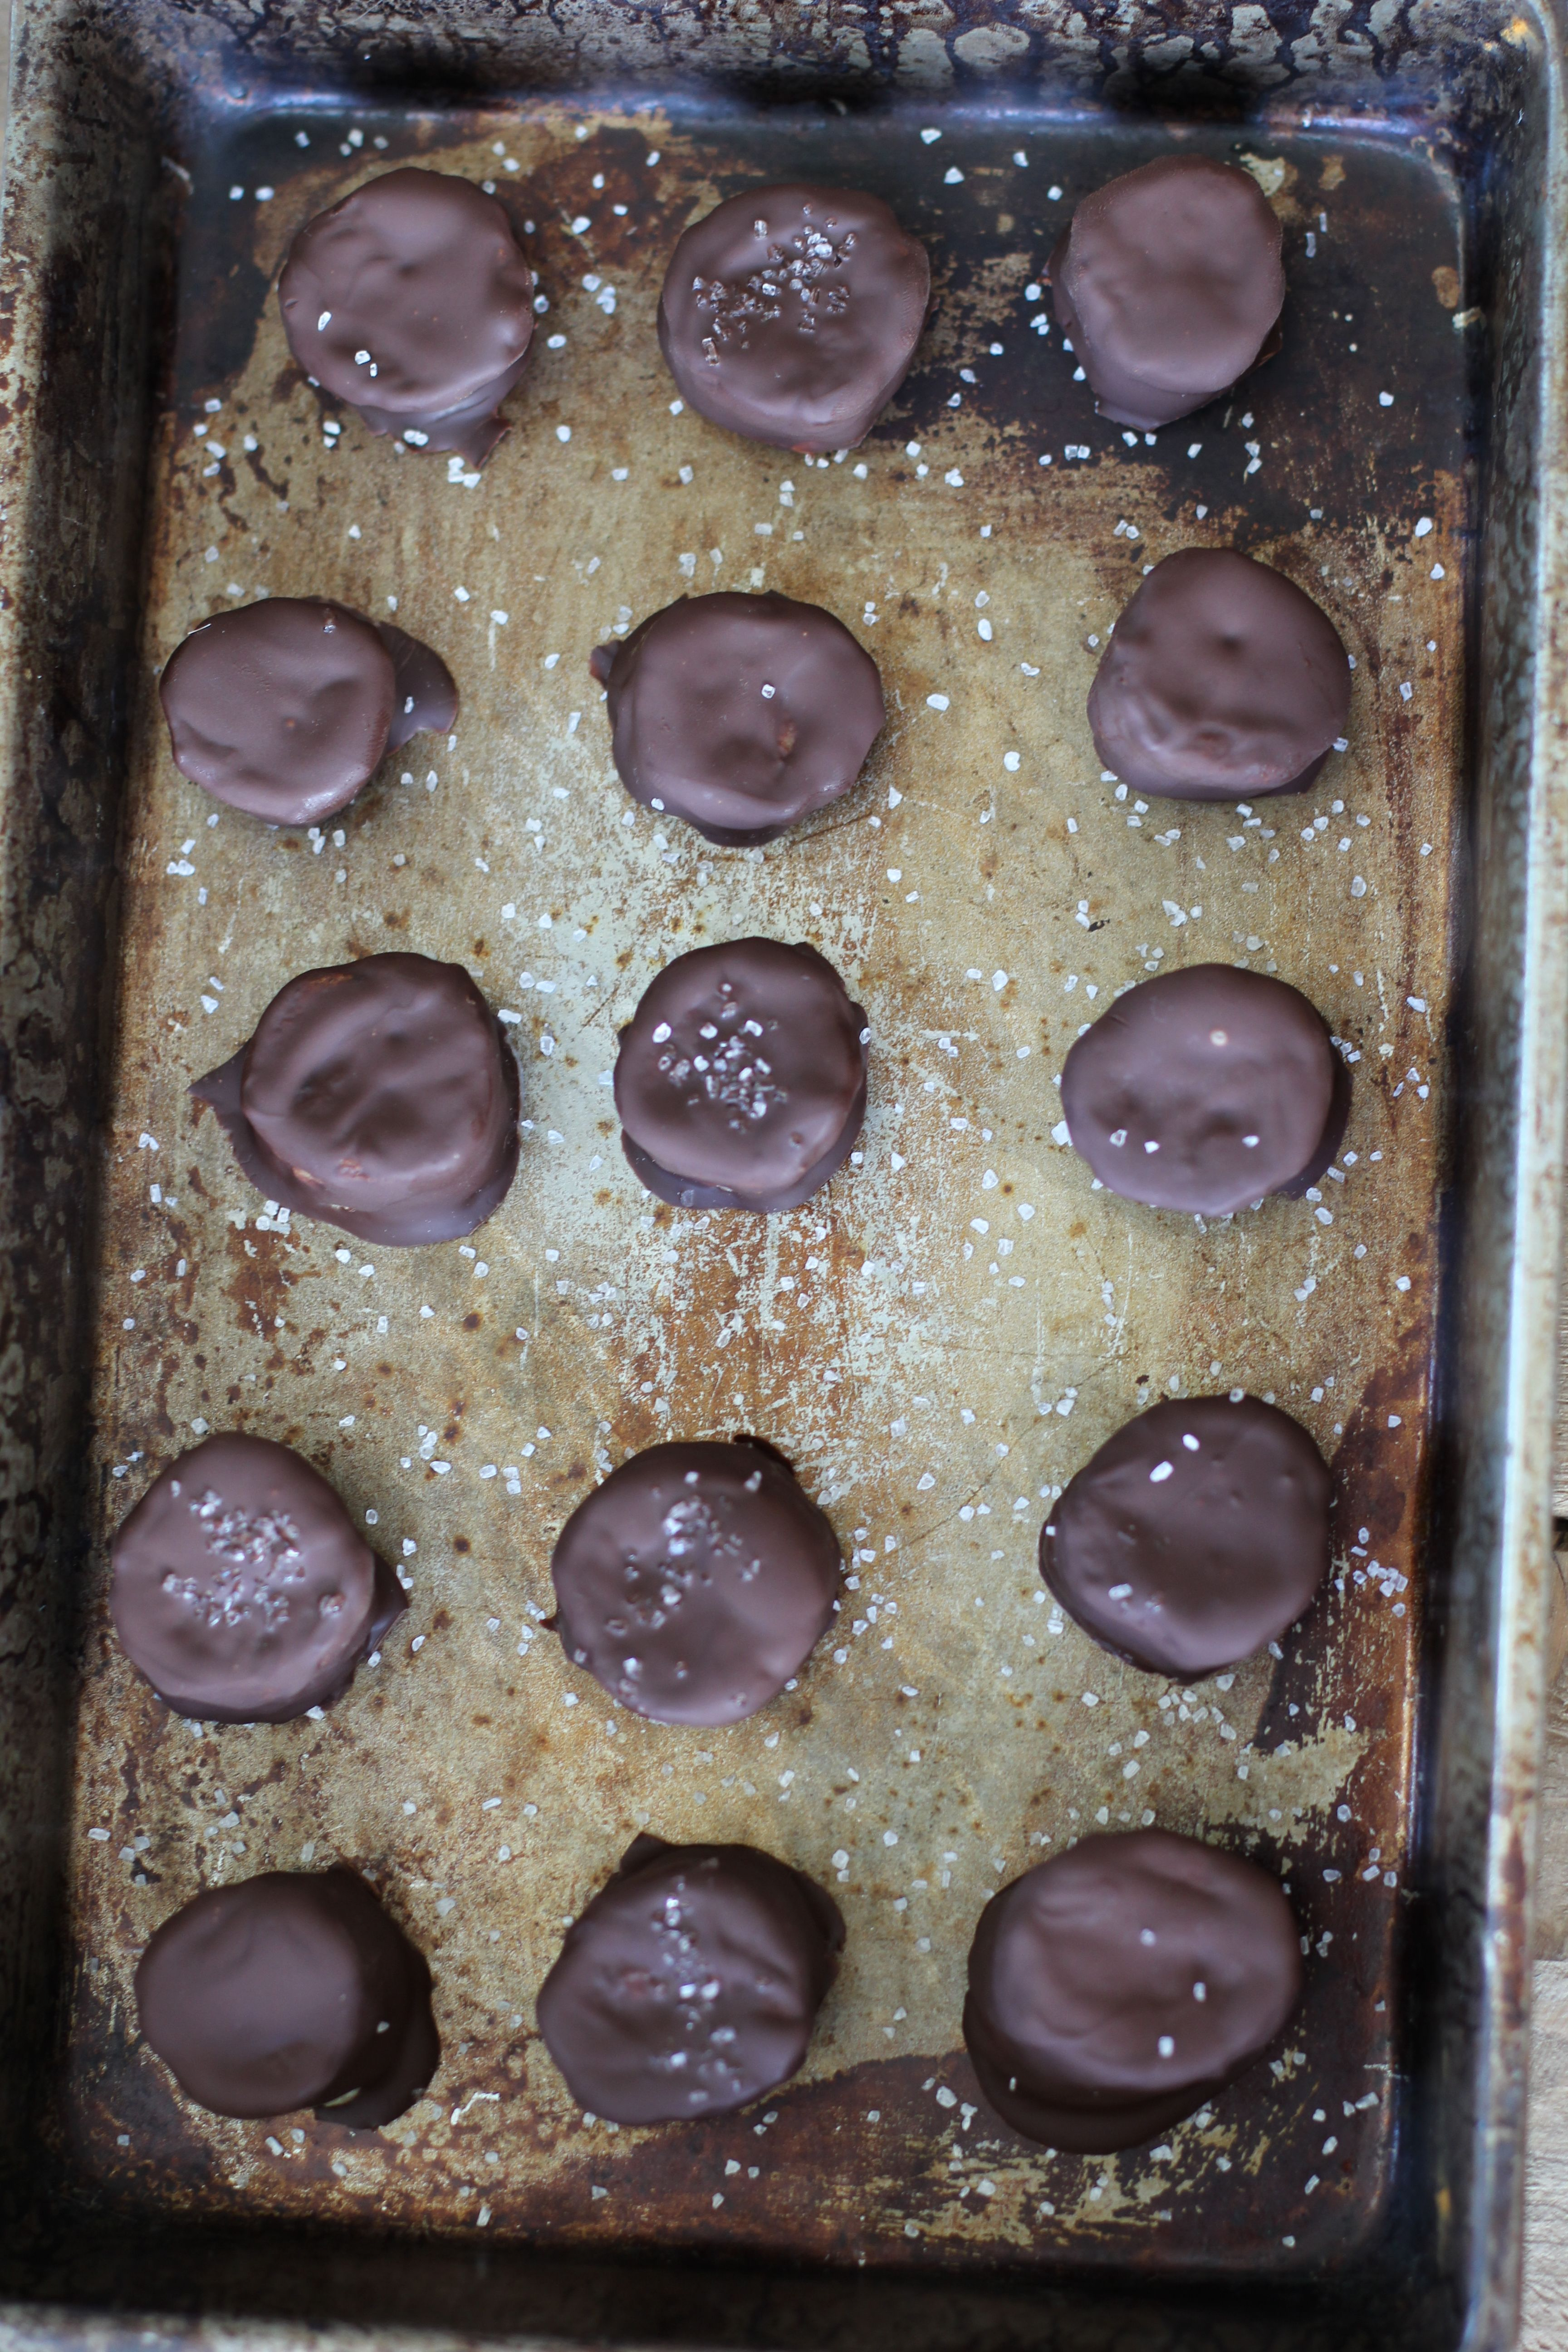 Frozen Chocolate Covered Carmelized Bananas - great simple treat:-)